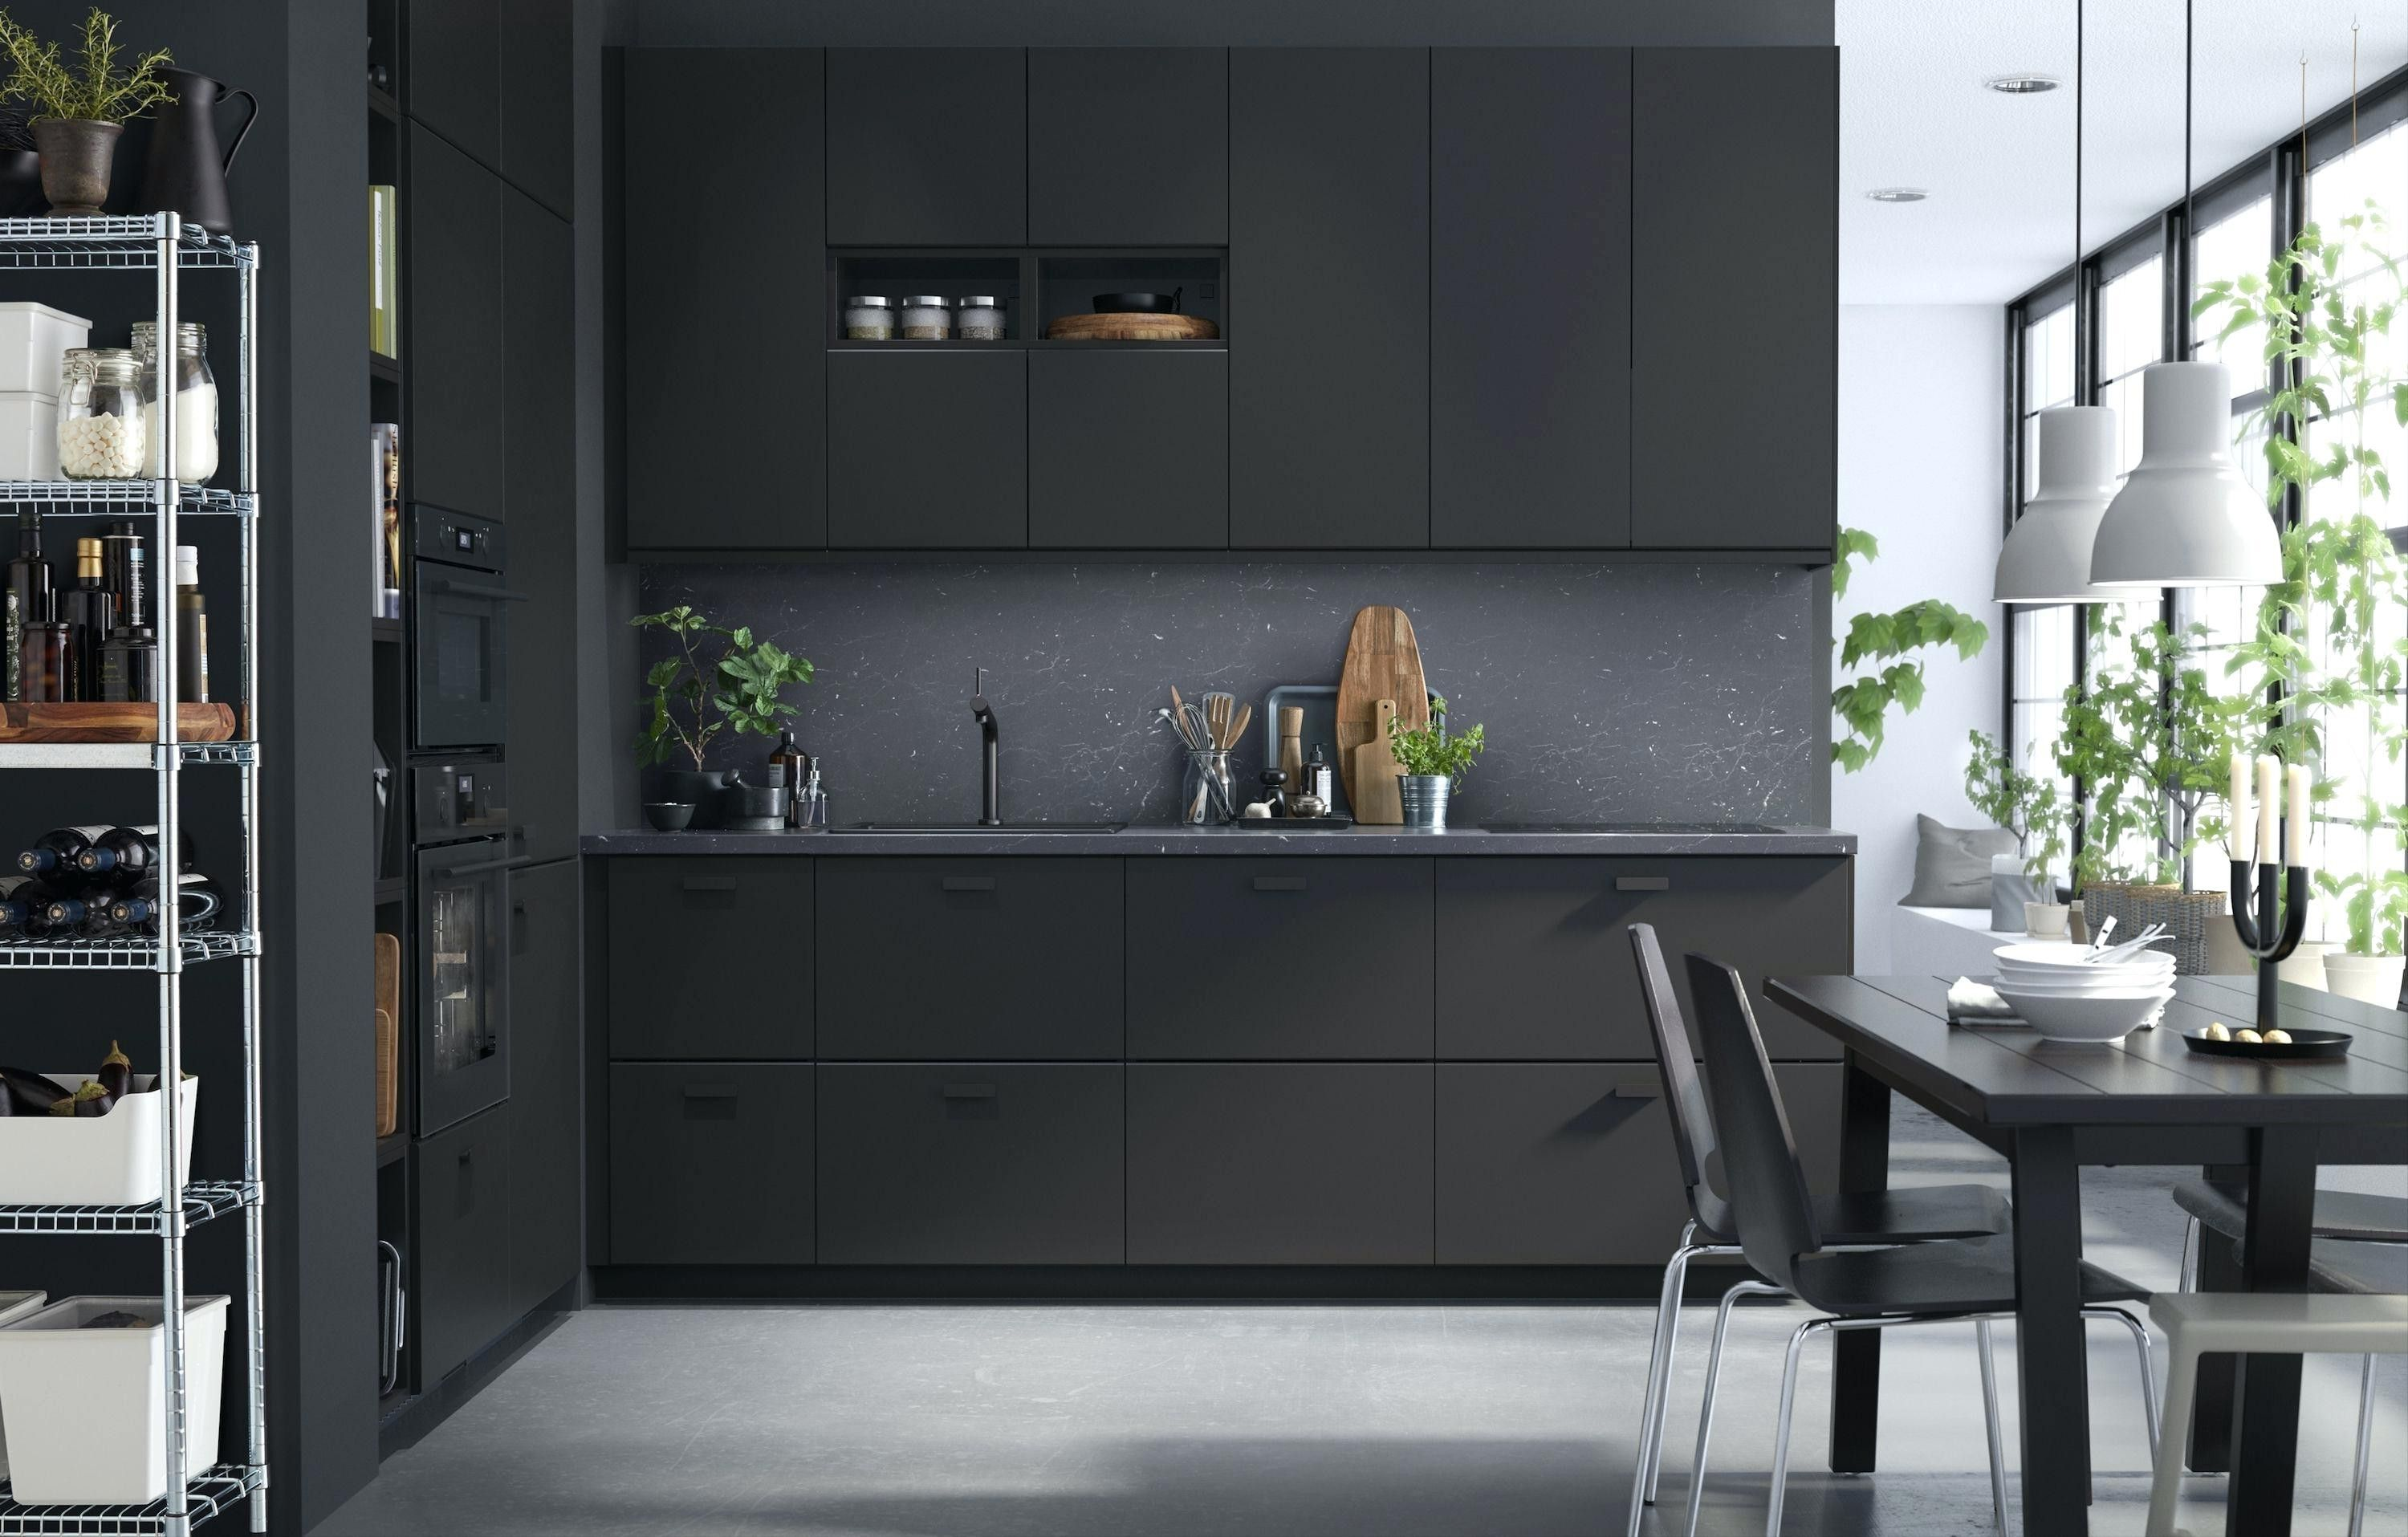 Awesome Ikea Kitchen Cabinets Pdf The Most Awesome And Also Gorgeous Ikea Kitchen Cabinets Pdf Pertaining To Invigo Dapur Ikea Dapur Kontemporer Model Dapur